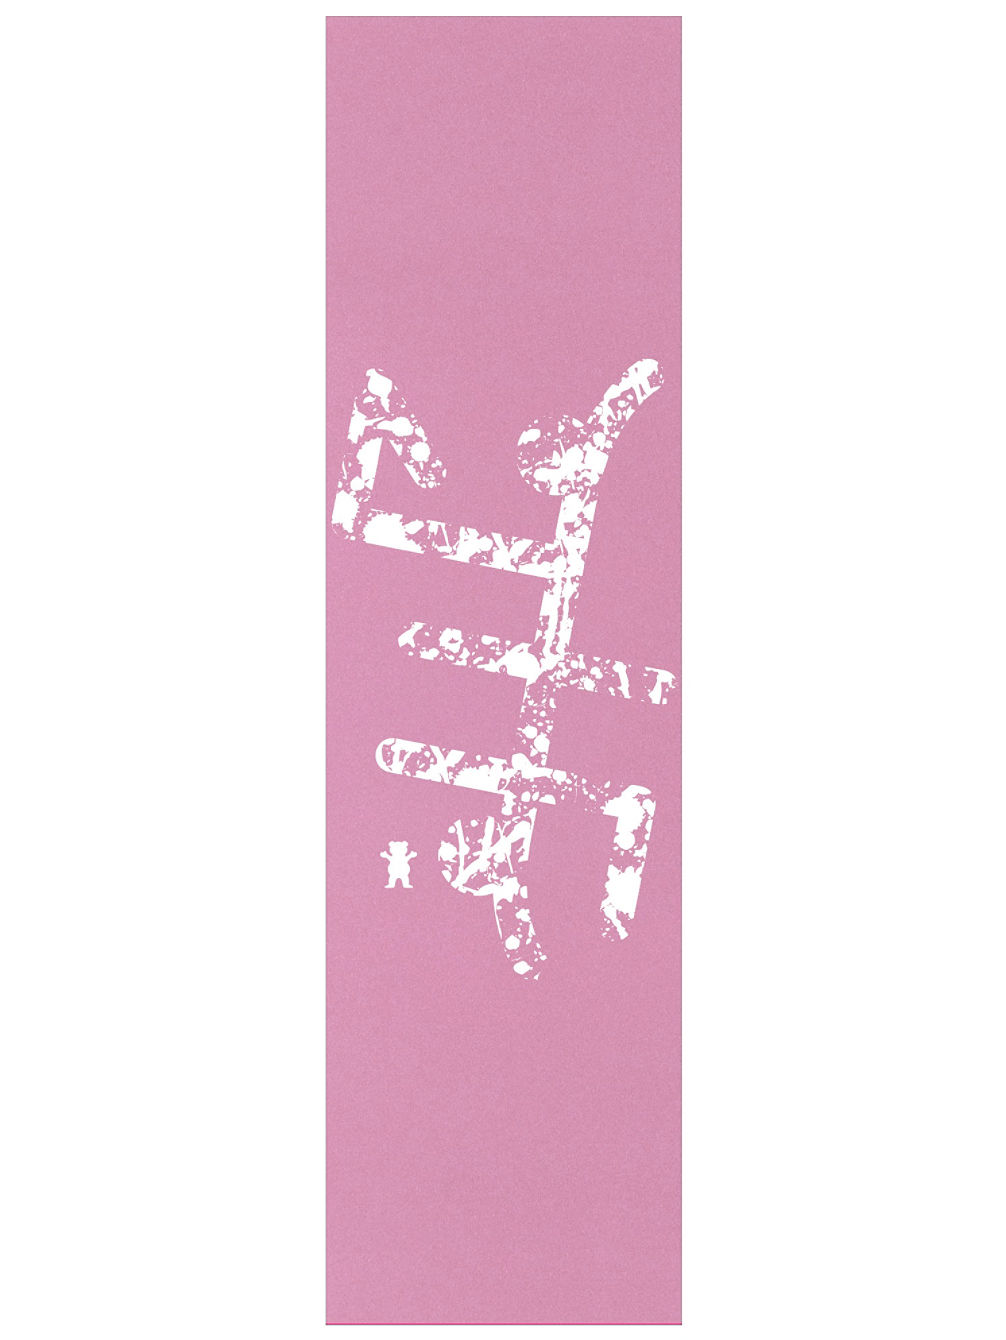 X Jhf Grip Tape Pink White